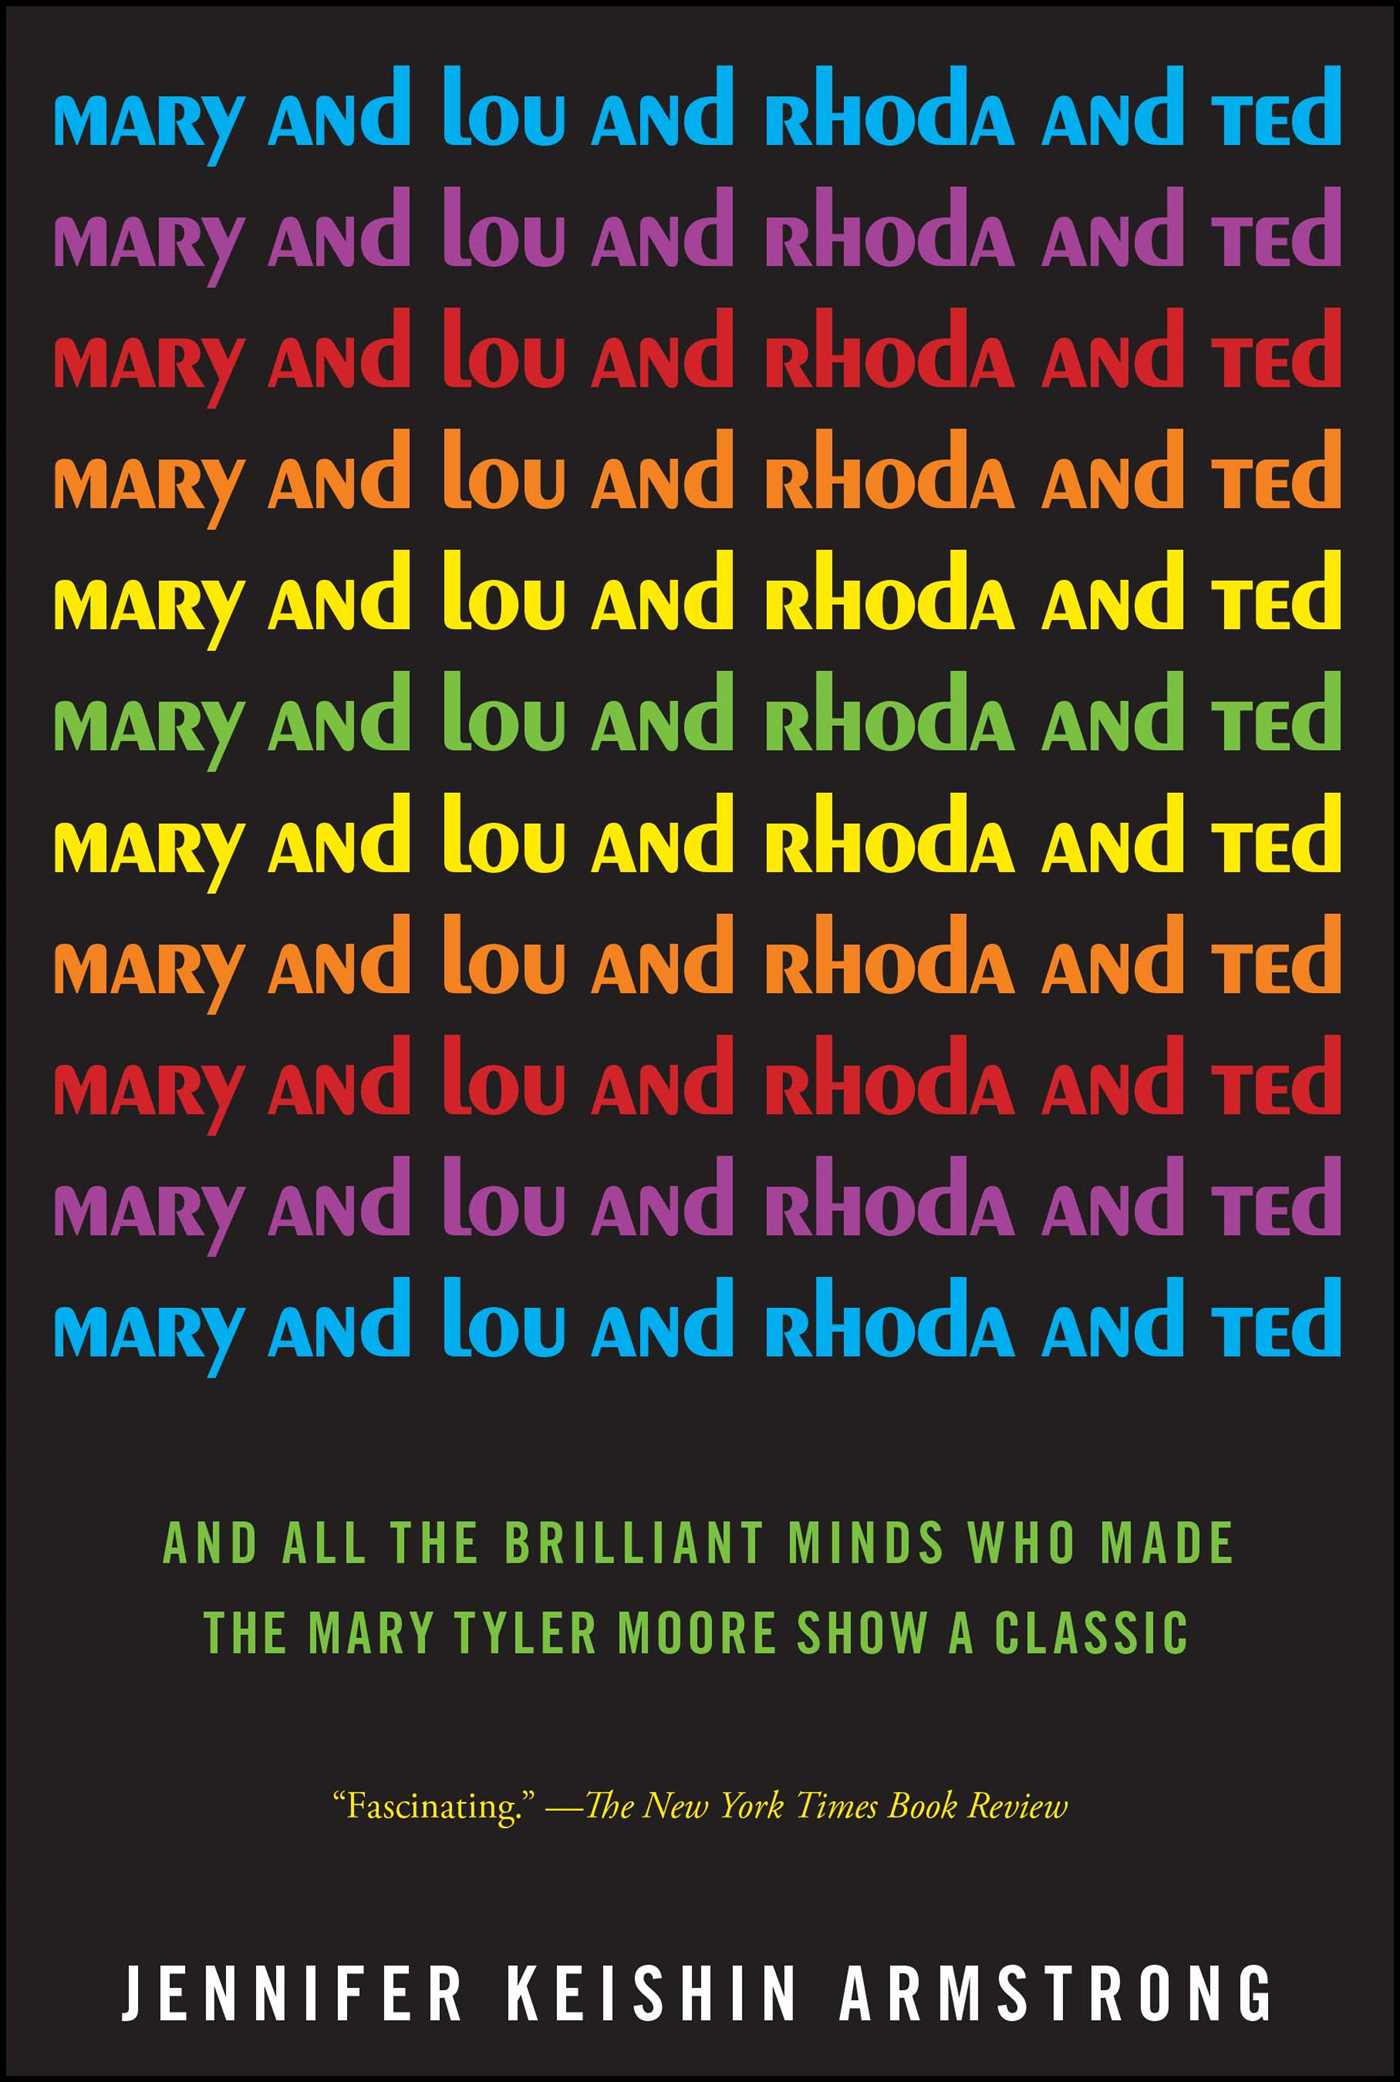 Mary-and-lou-and-rhoda-and-ted-9781451659238_hr